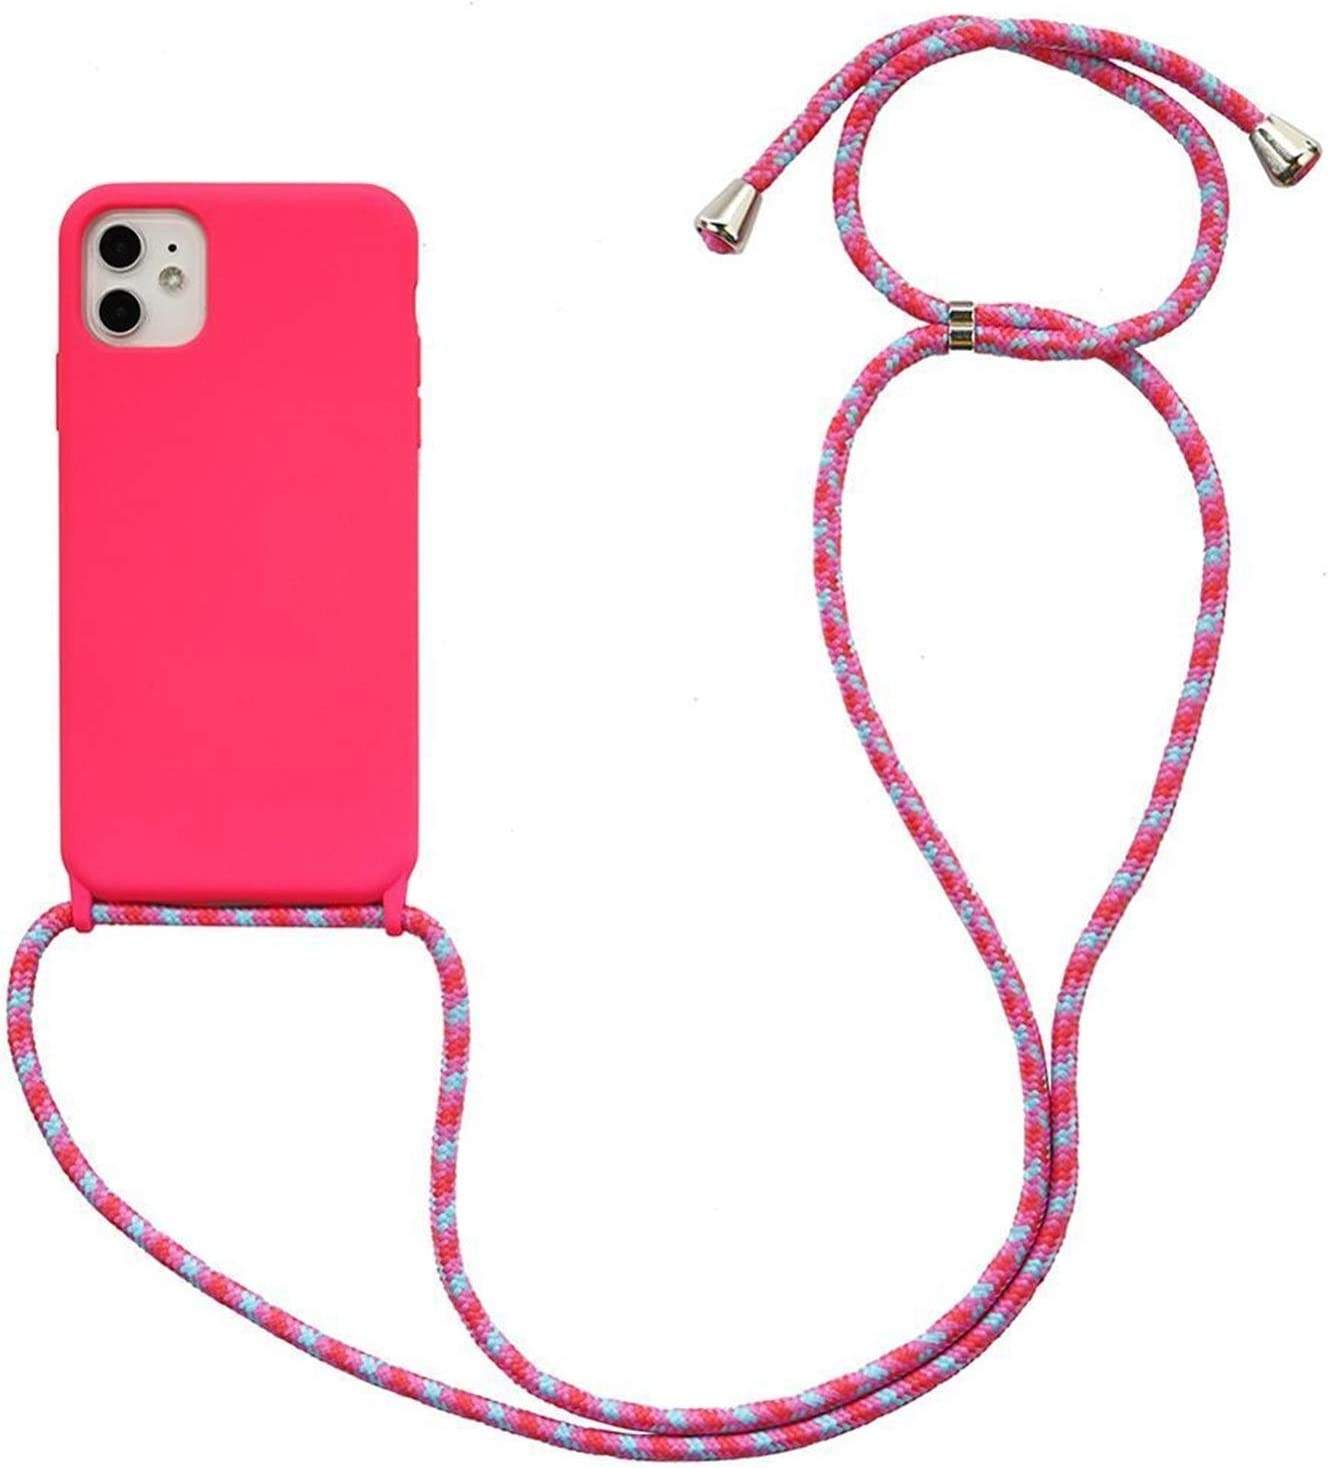 Zija Crossbody Necklace Holder Phone Case for iPhone 11 pro XS max Xr 6s 7 8 Plus Lanyard Silicone Case Cover with Cord Strap Rope (Color : Bright Pink02, Material : for 6 6s 7 8 SE2020)